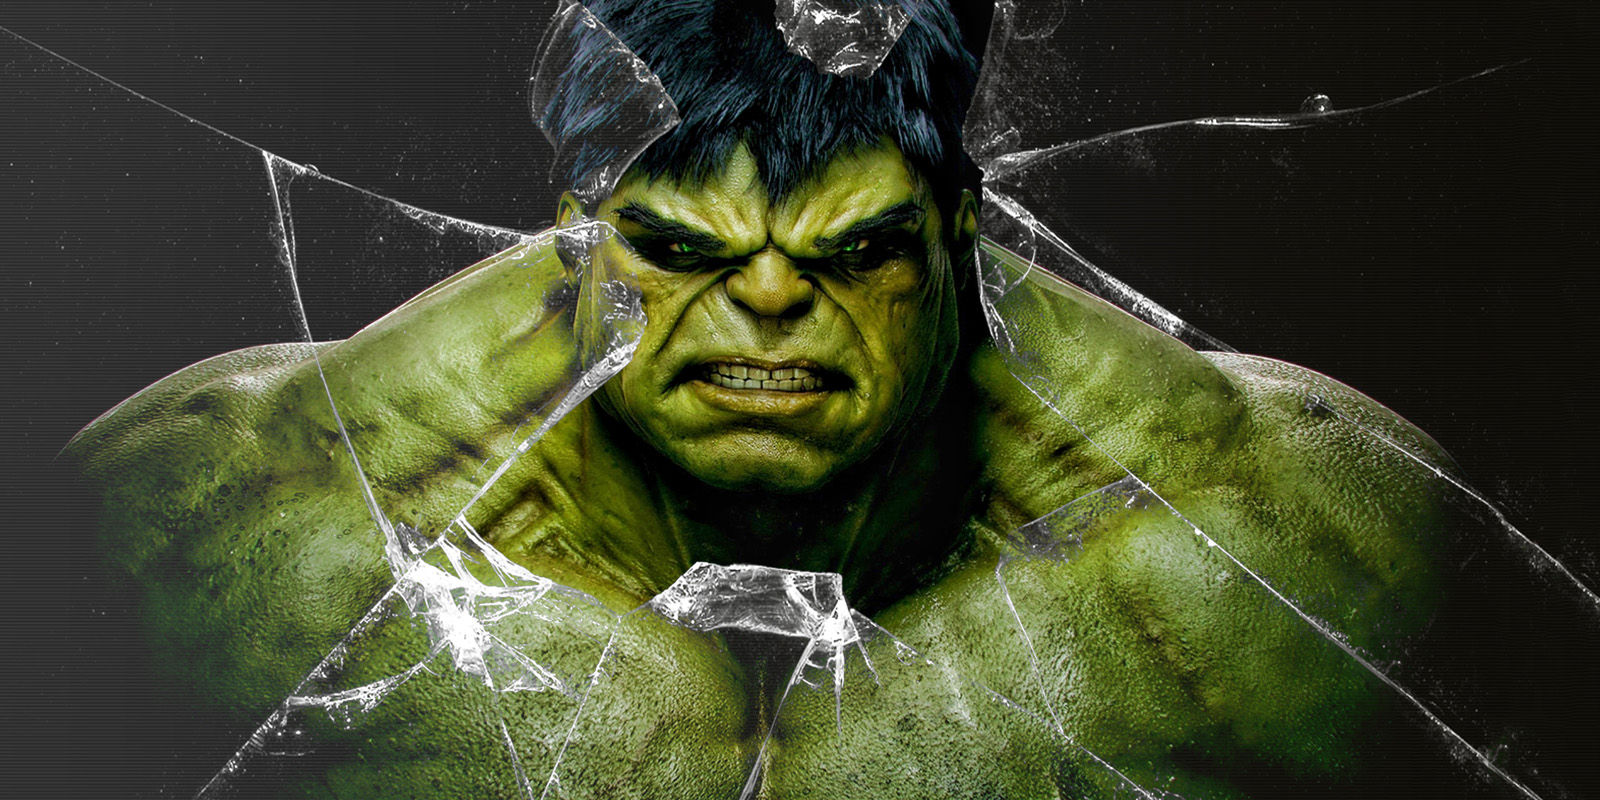 Hulk in a Broken Glass 439.84 Kb